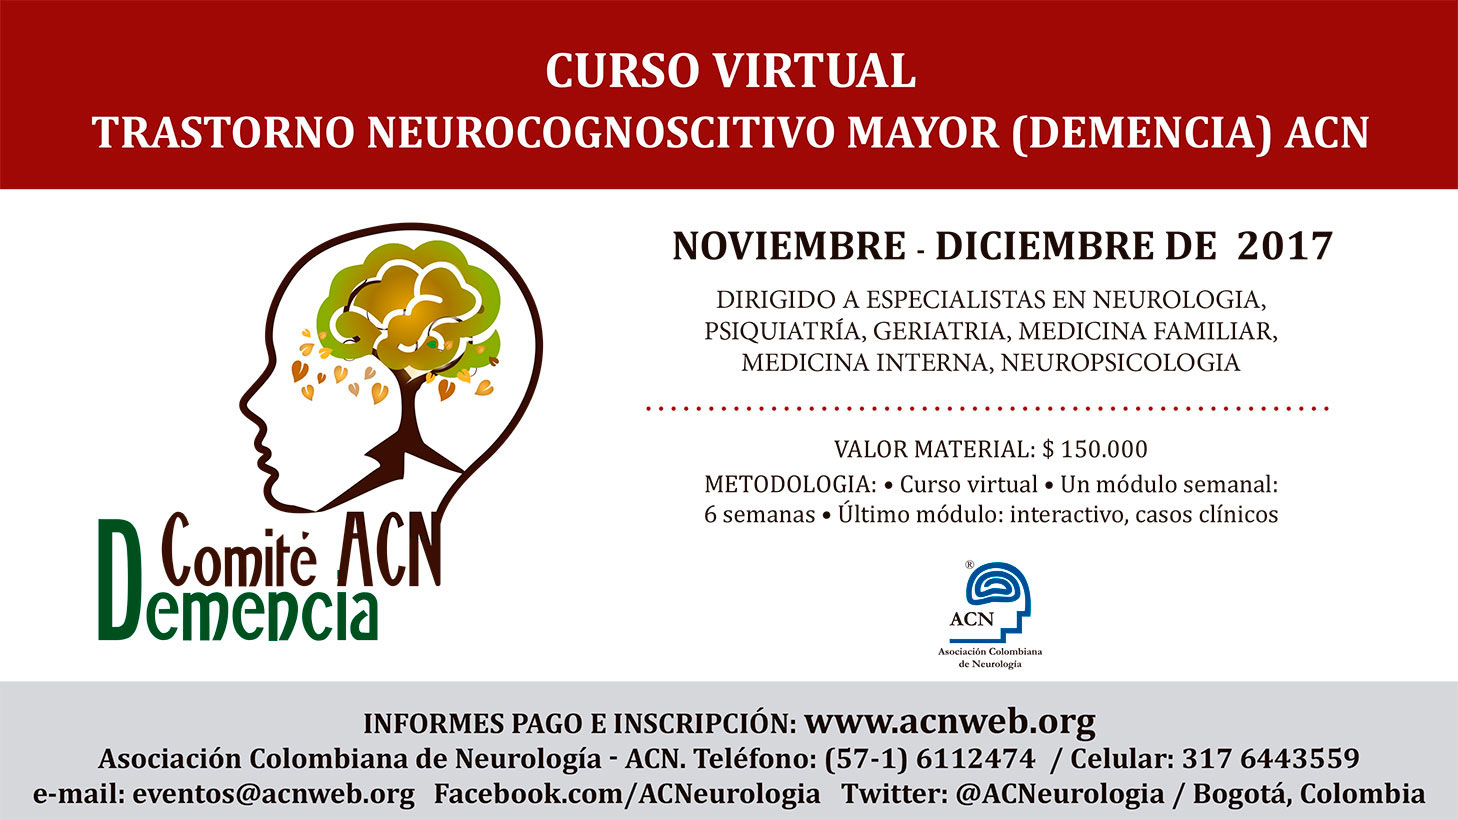 CURSO VIRTUAL TRASTORNO NEUROCOGNOSCITIVO MAYOR (DEMENCIA) ACN